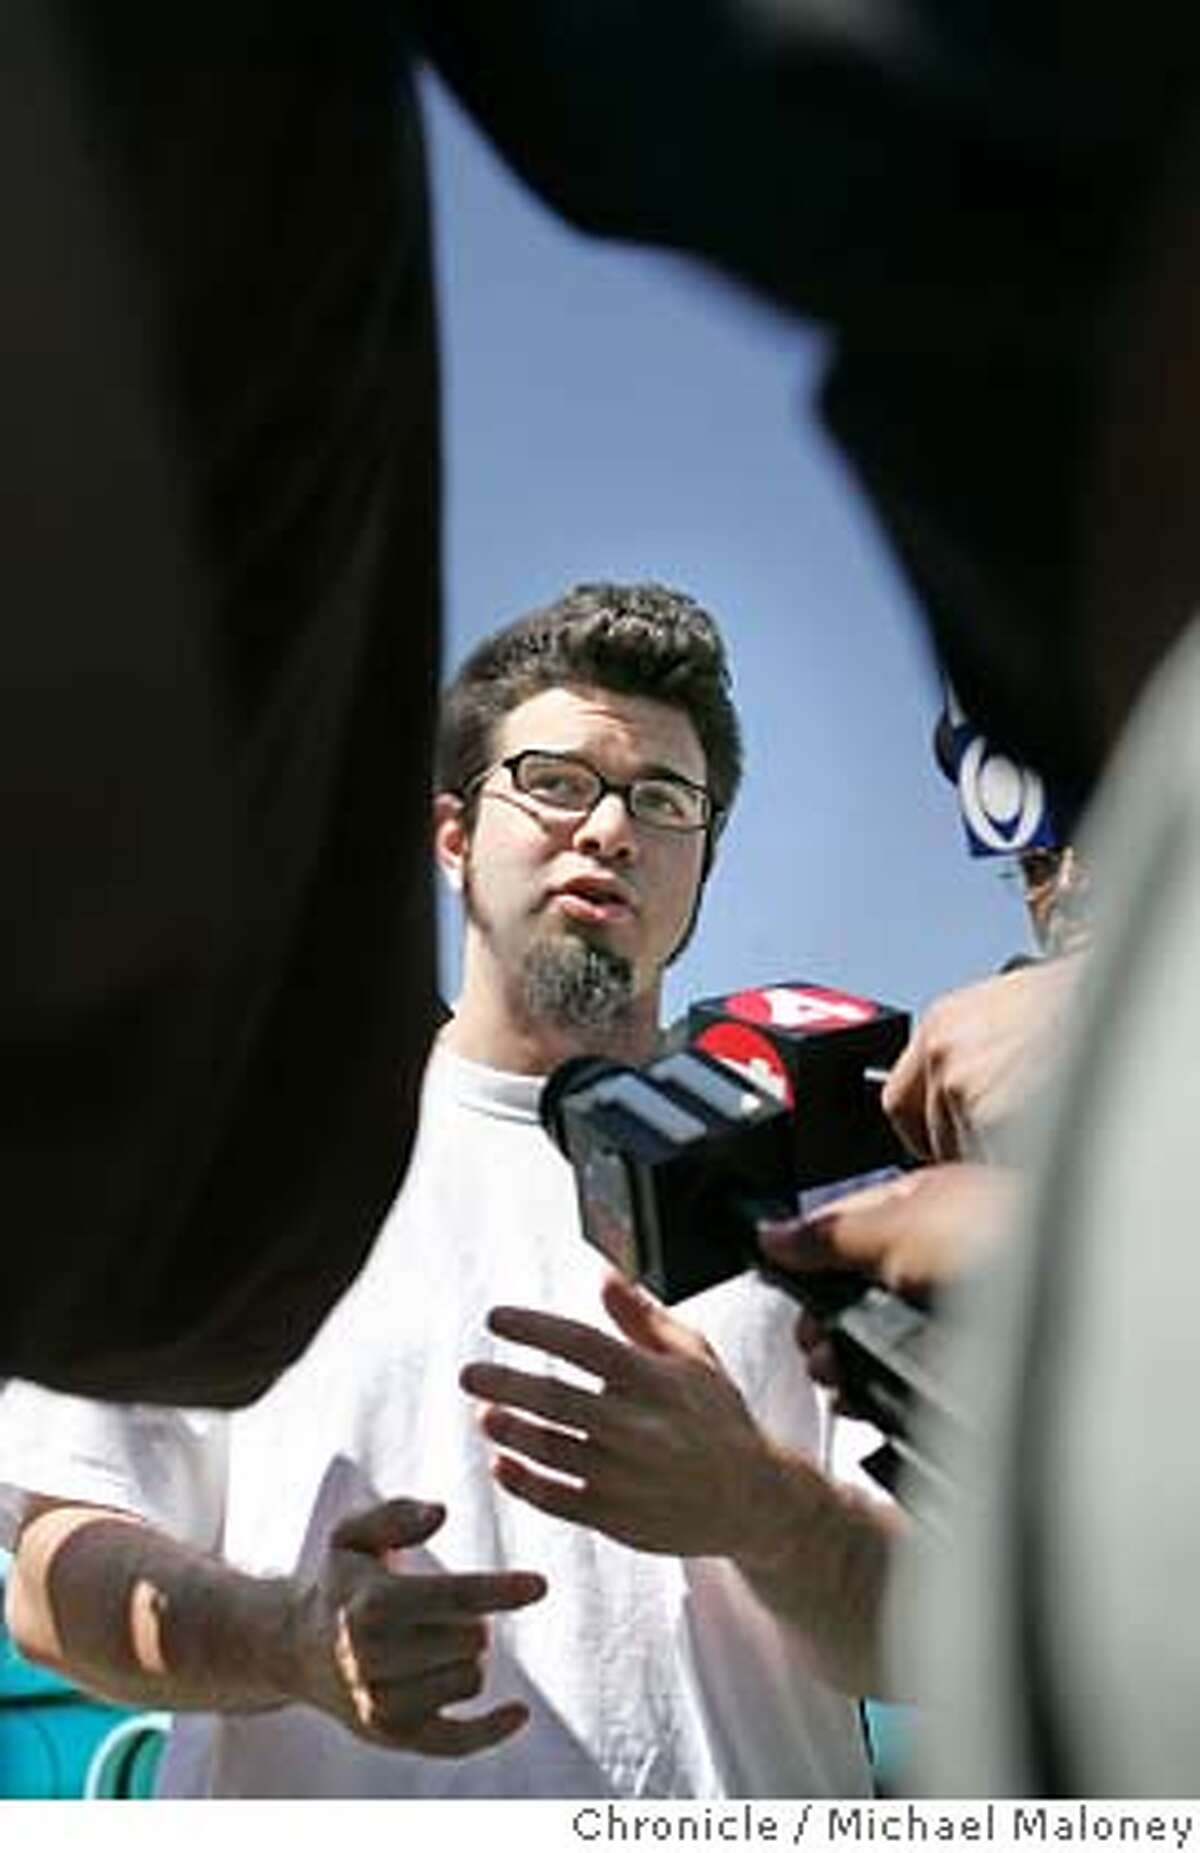 Josh Wolf talks to the media outside the gates to Federal Correctional Institution in Dublin. Josh Wolf, a blogger and freelance journalist who has spent 7 1/2 months in federal prison for defying a grand jury subpoena related to his coverage of an anarchist protest, has turned over video footage to prosecutors and was released today, April 3, 2007 from the Federal Correctional Institution in Dublin. Photo by Michael Maloney / San Francisco Chronicle ***Josh Wolf